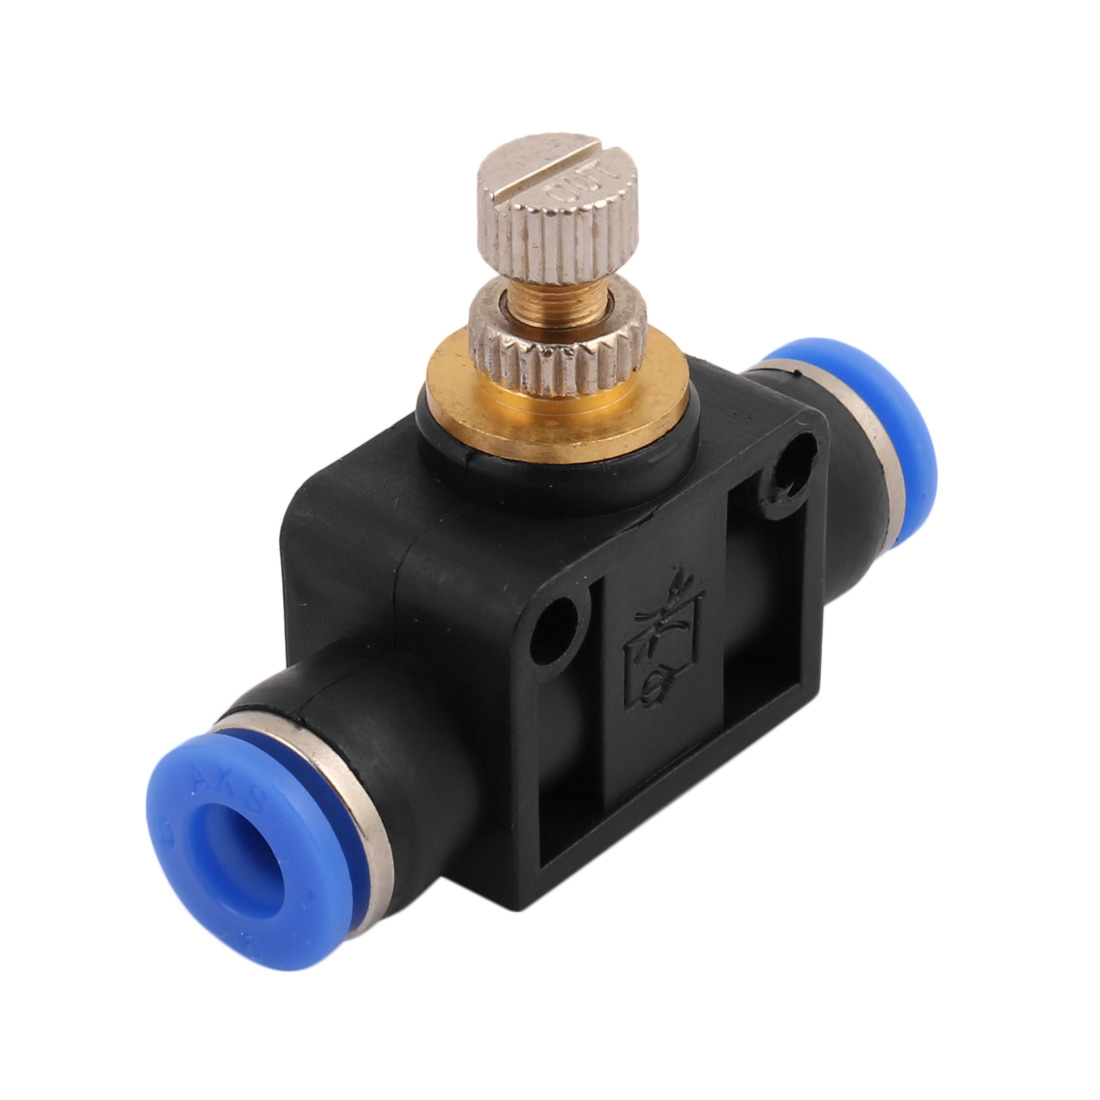 Tube Speed Control Quick Connector Pneumatic Push In Fitting 6mm to 6mm